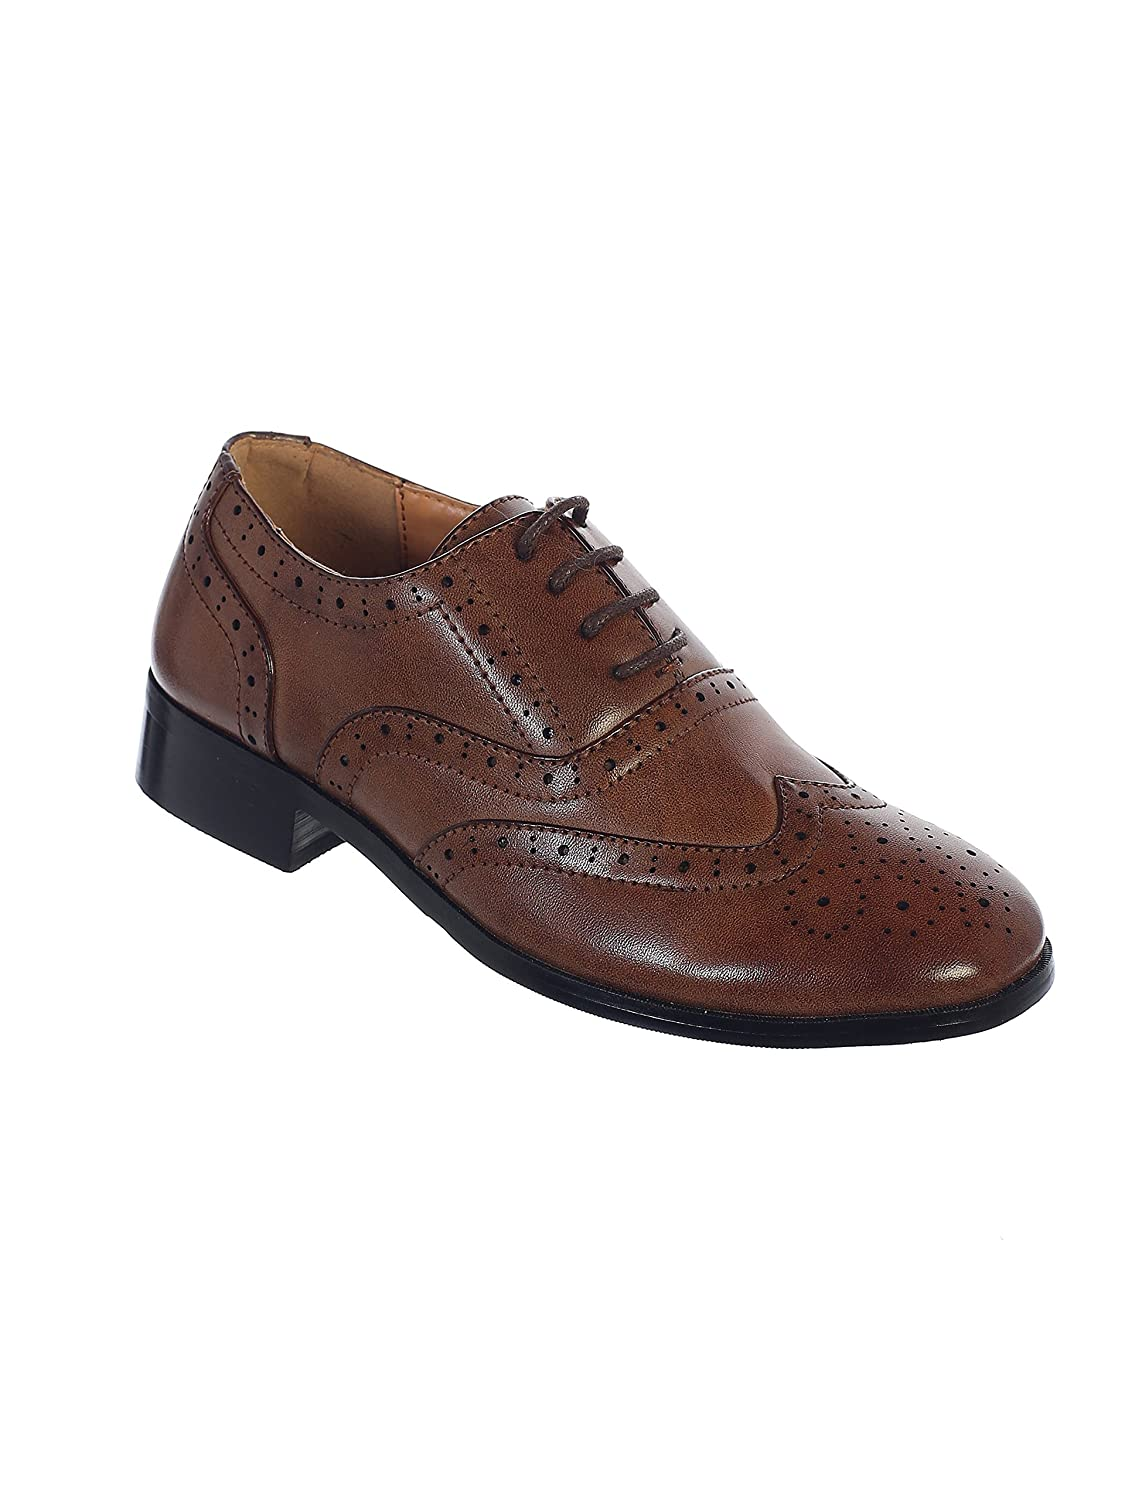 Lace-up Formal Oxford Style Special Occasion Dress Shoes